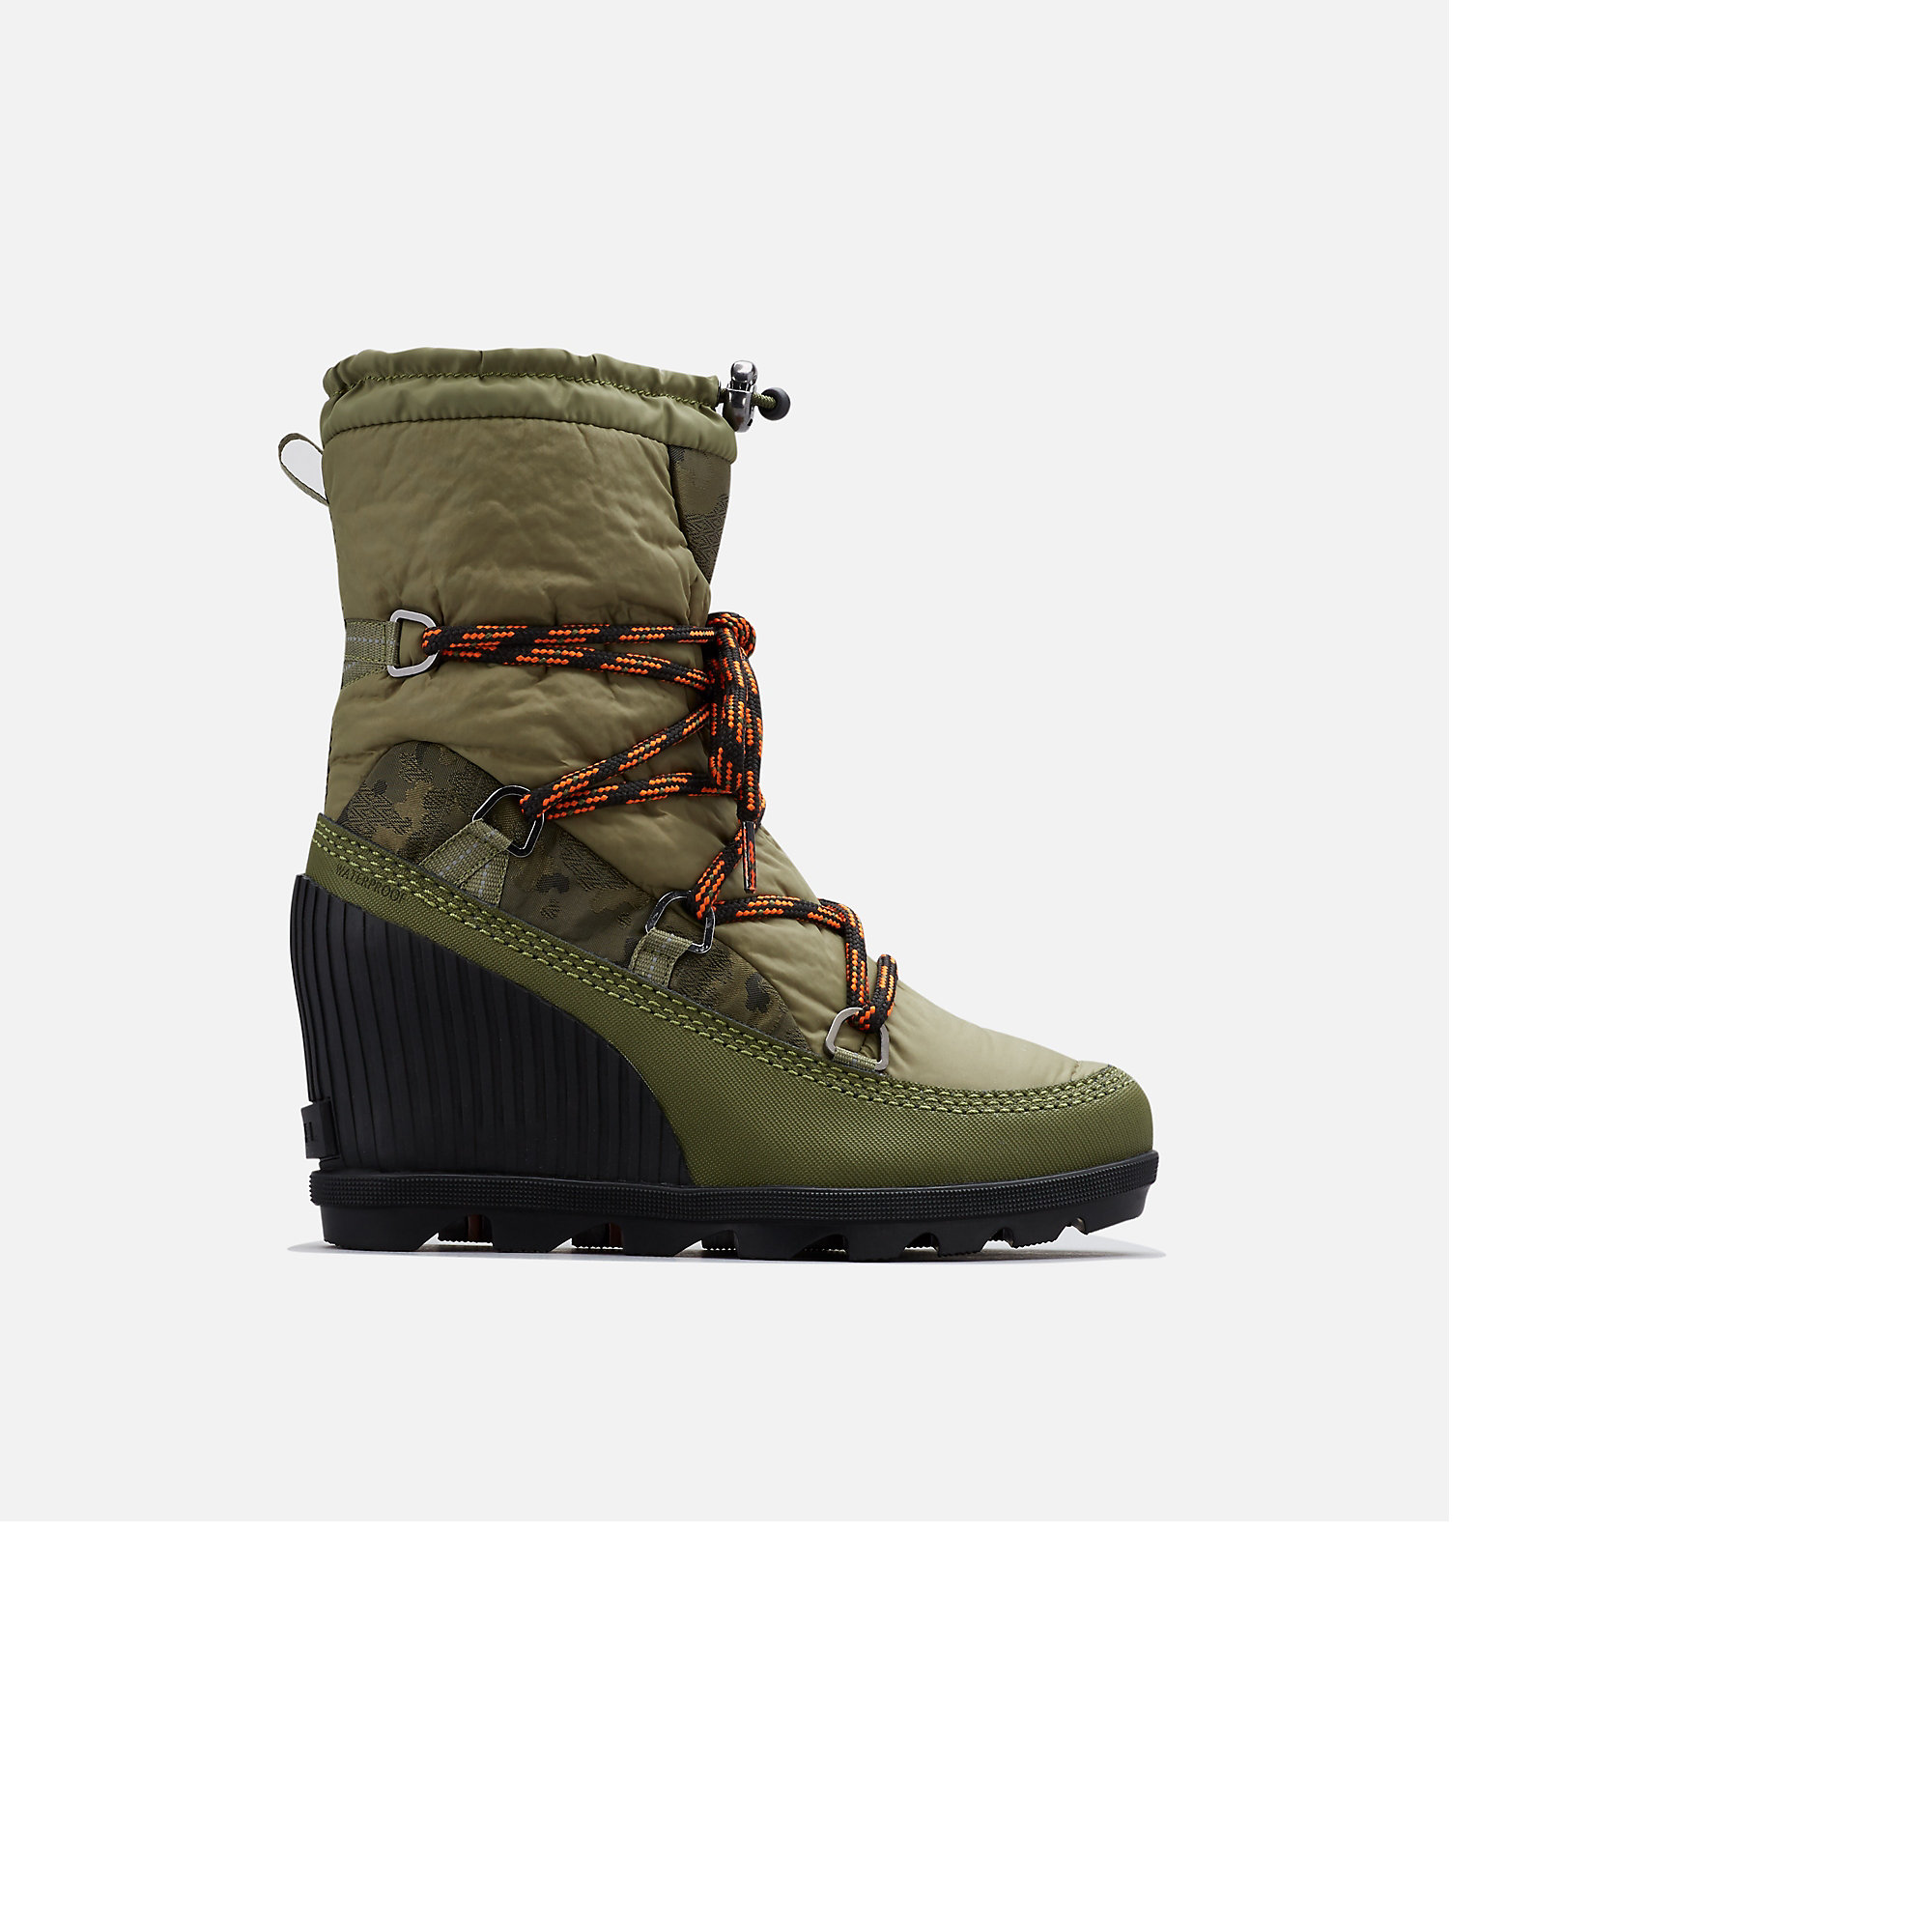 Wedge Boot | Boots, Wedges, Hiking boots